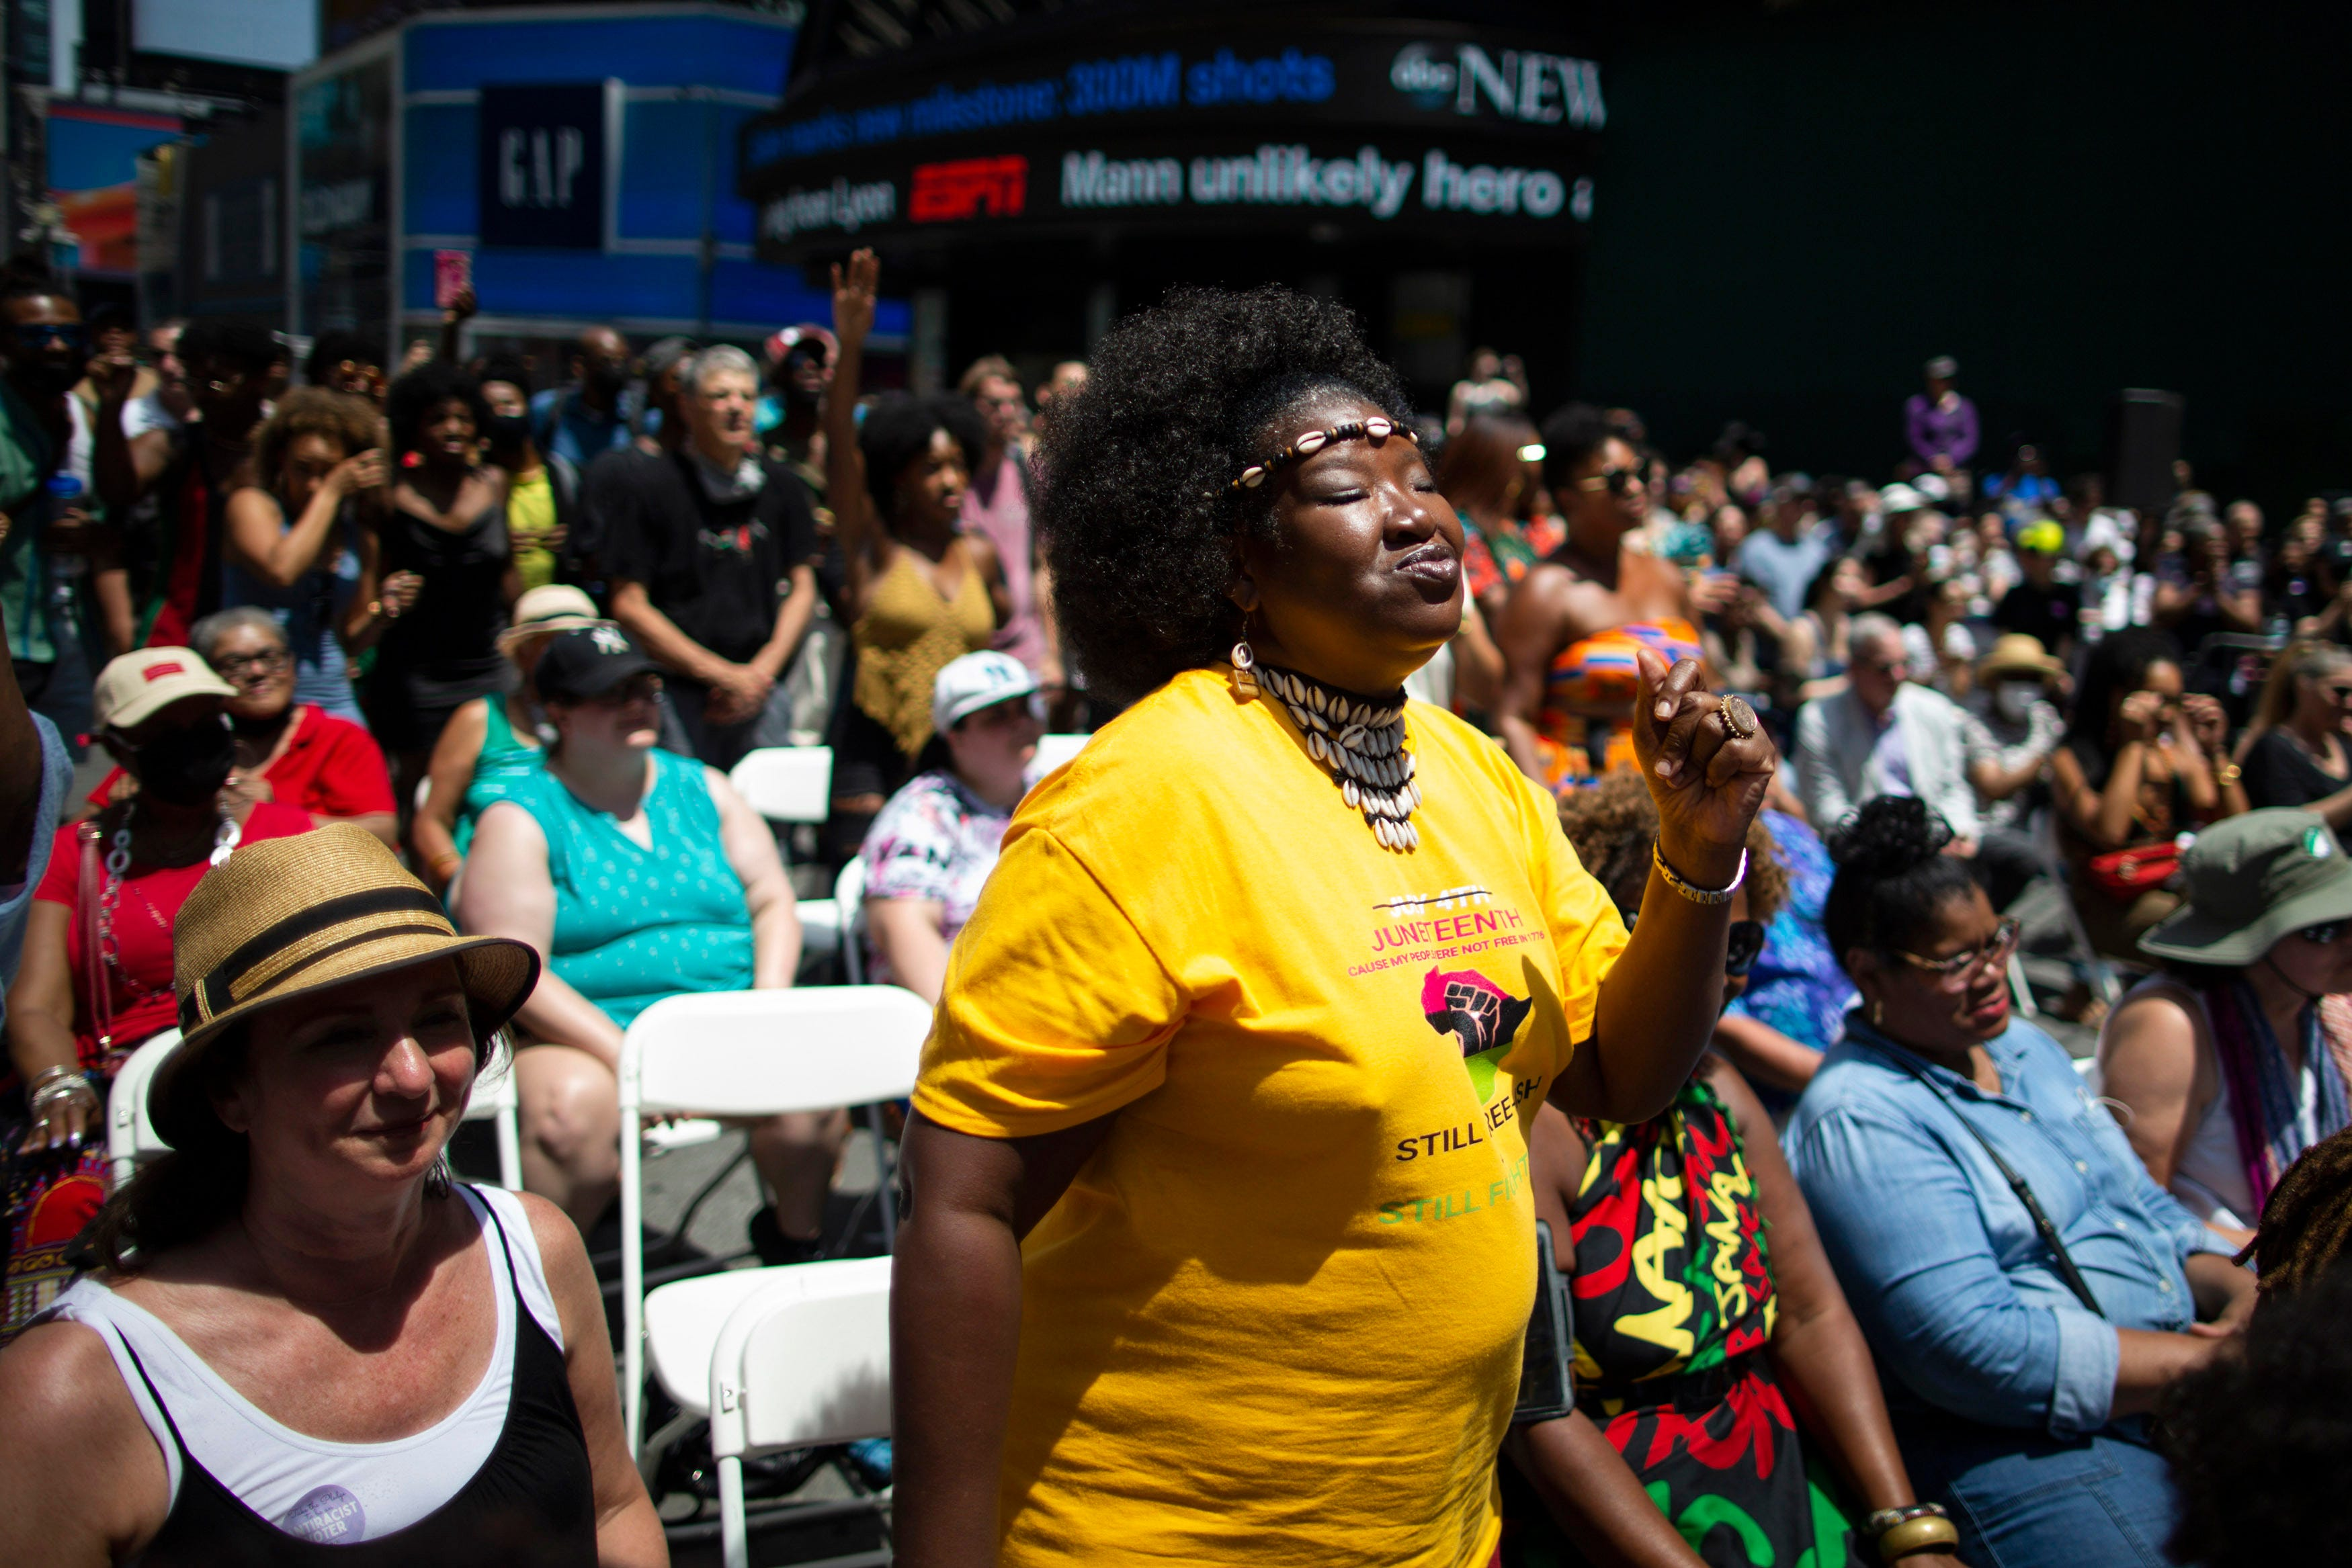 Juneteenth, recalling end of slavery, is marked across US 2